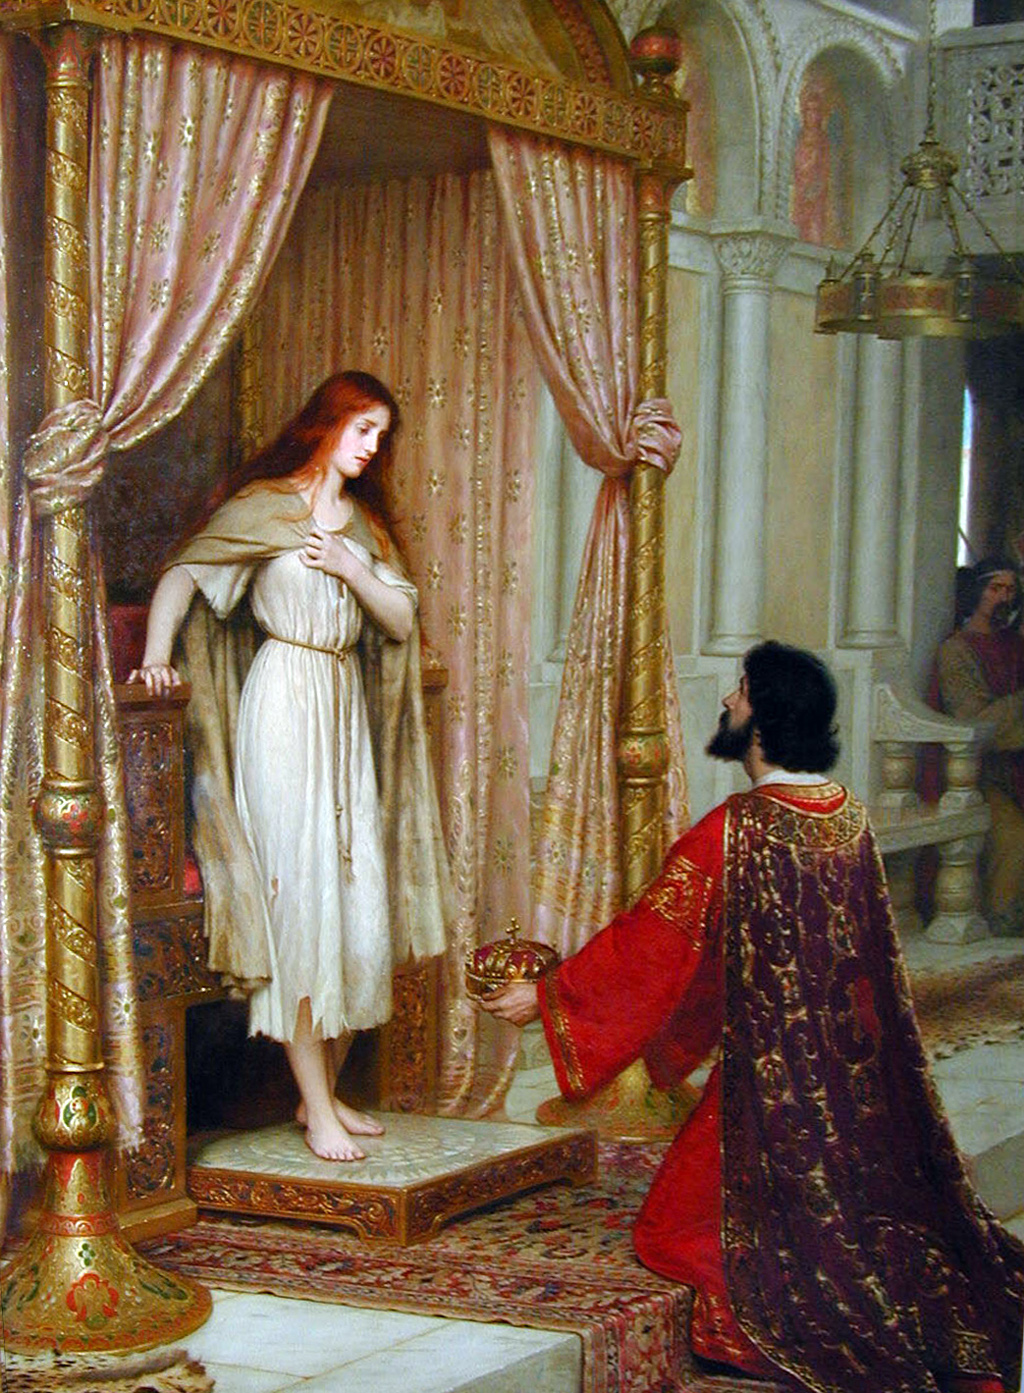 The King and the Beggar-maid by Edmund Blair Leighton